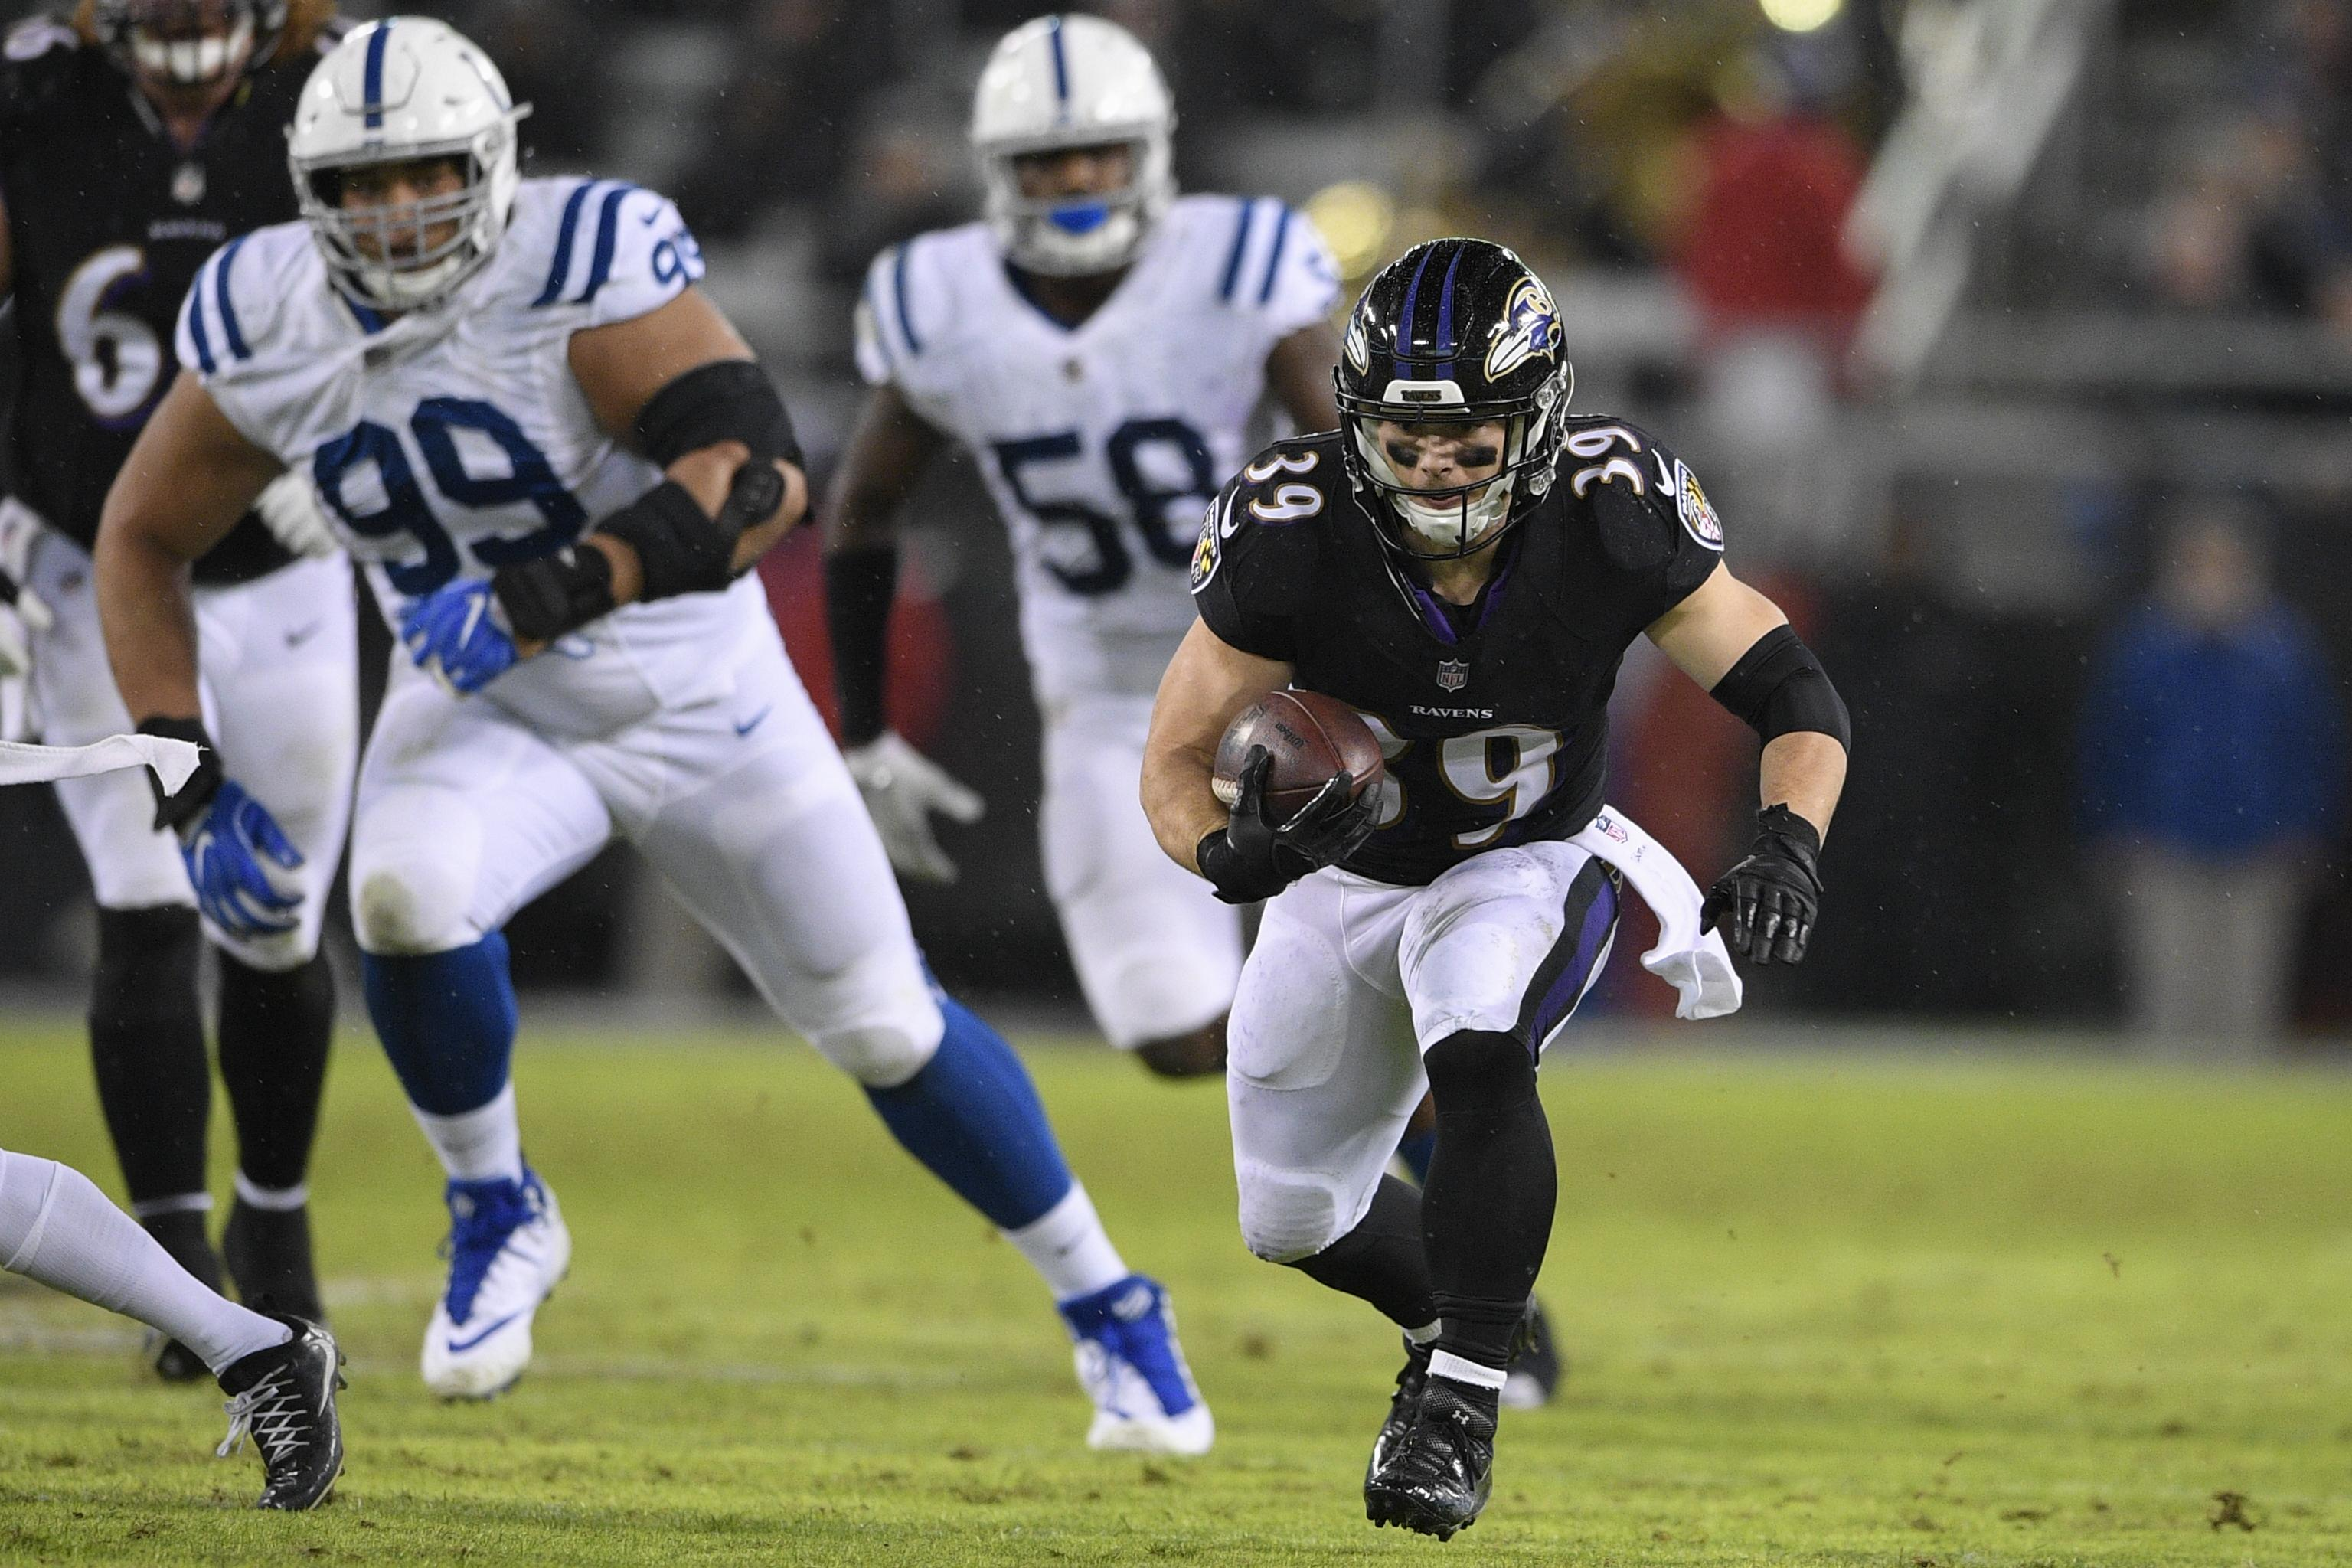 Danny Woodhead Retires from NFL After 10-Year Career | Bleacher Report | Latest News, Videos and Highlights